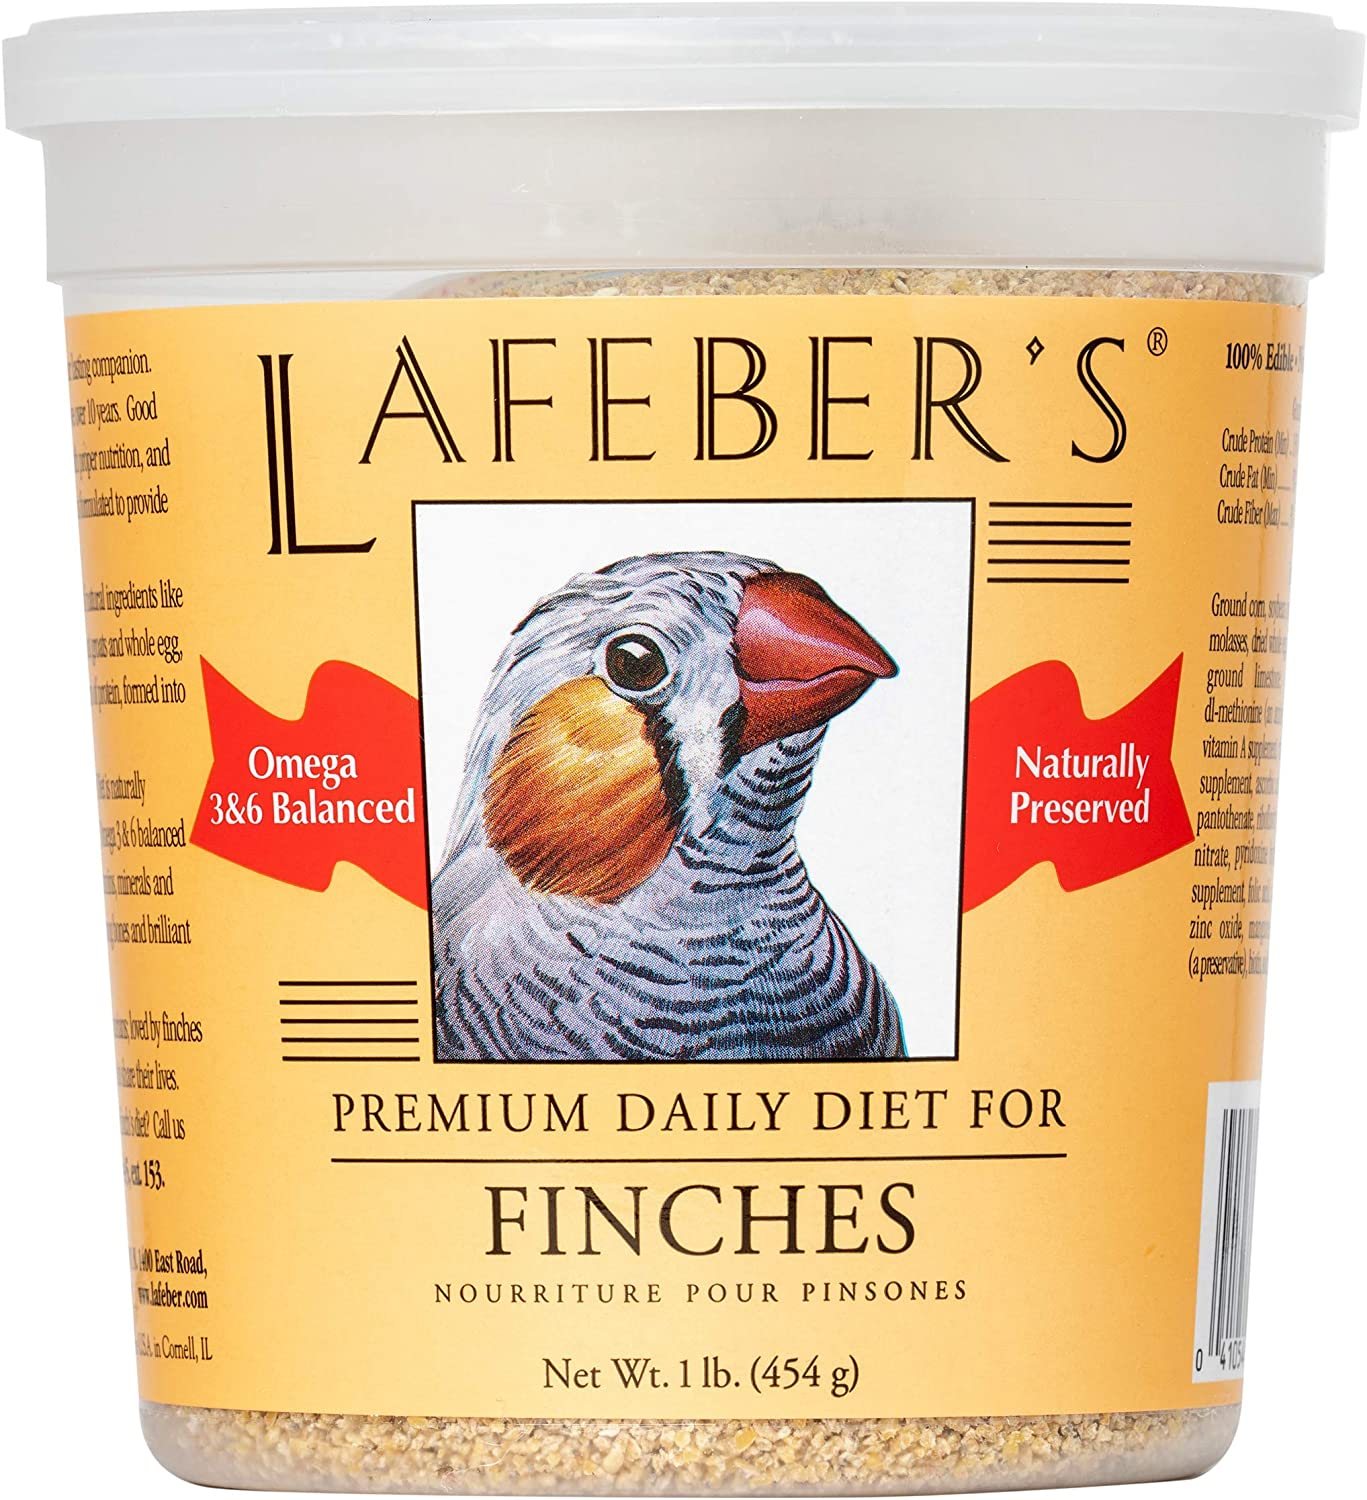 LAFEBER'S Premium Daily Diet or Gourmet Fruit Pellets Pet Bird Food, Made with Non-GMO and Human-Grade Ingredients, for Finches